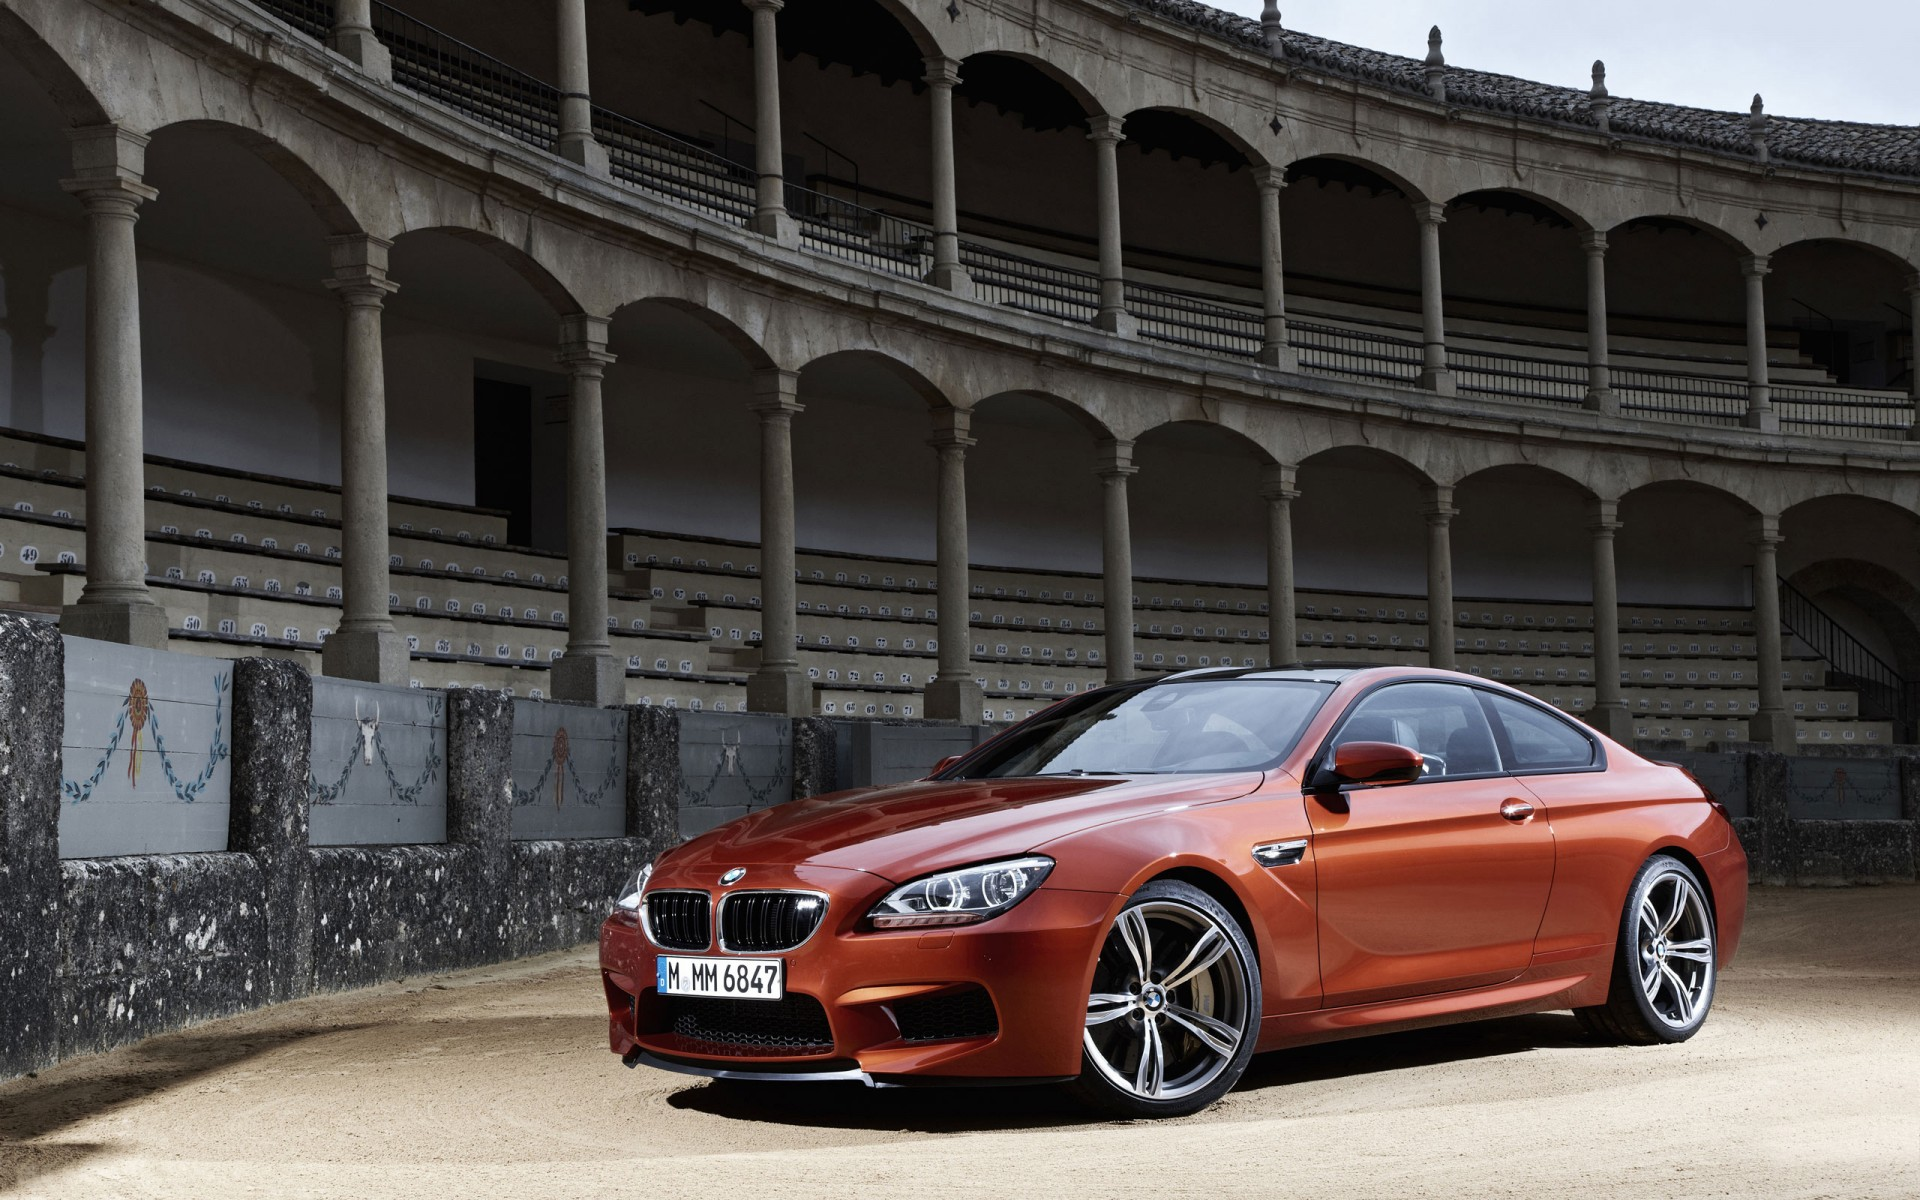 2013 BMW M6 Coupe Wallpaper   HD Car Wallpapers   ID #2814